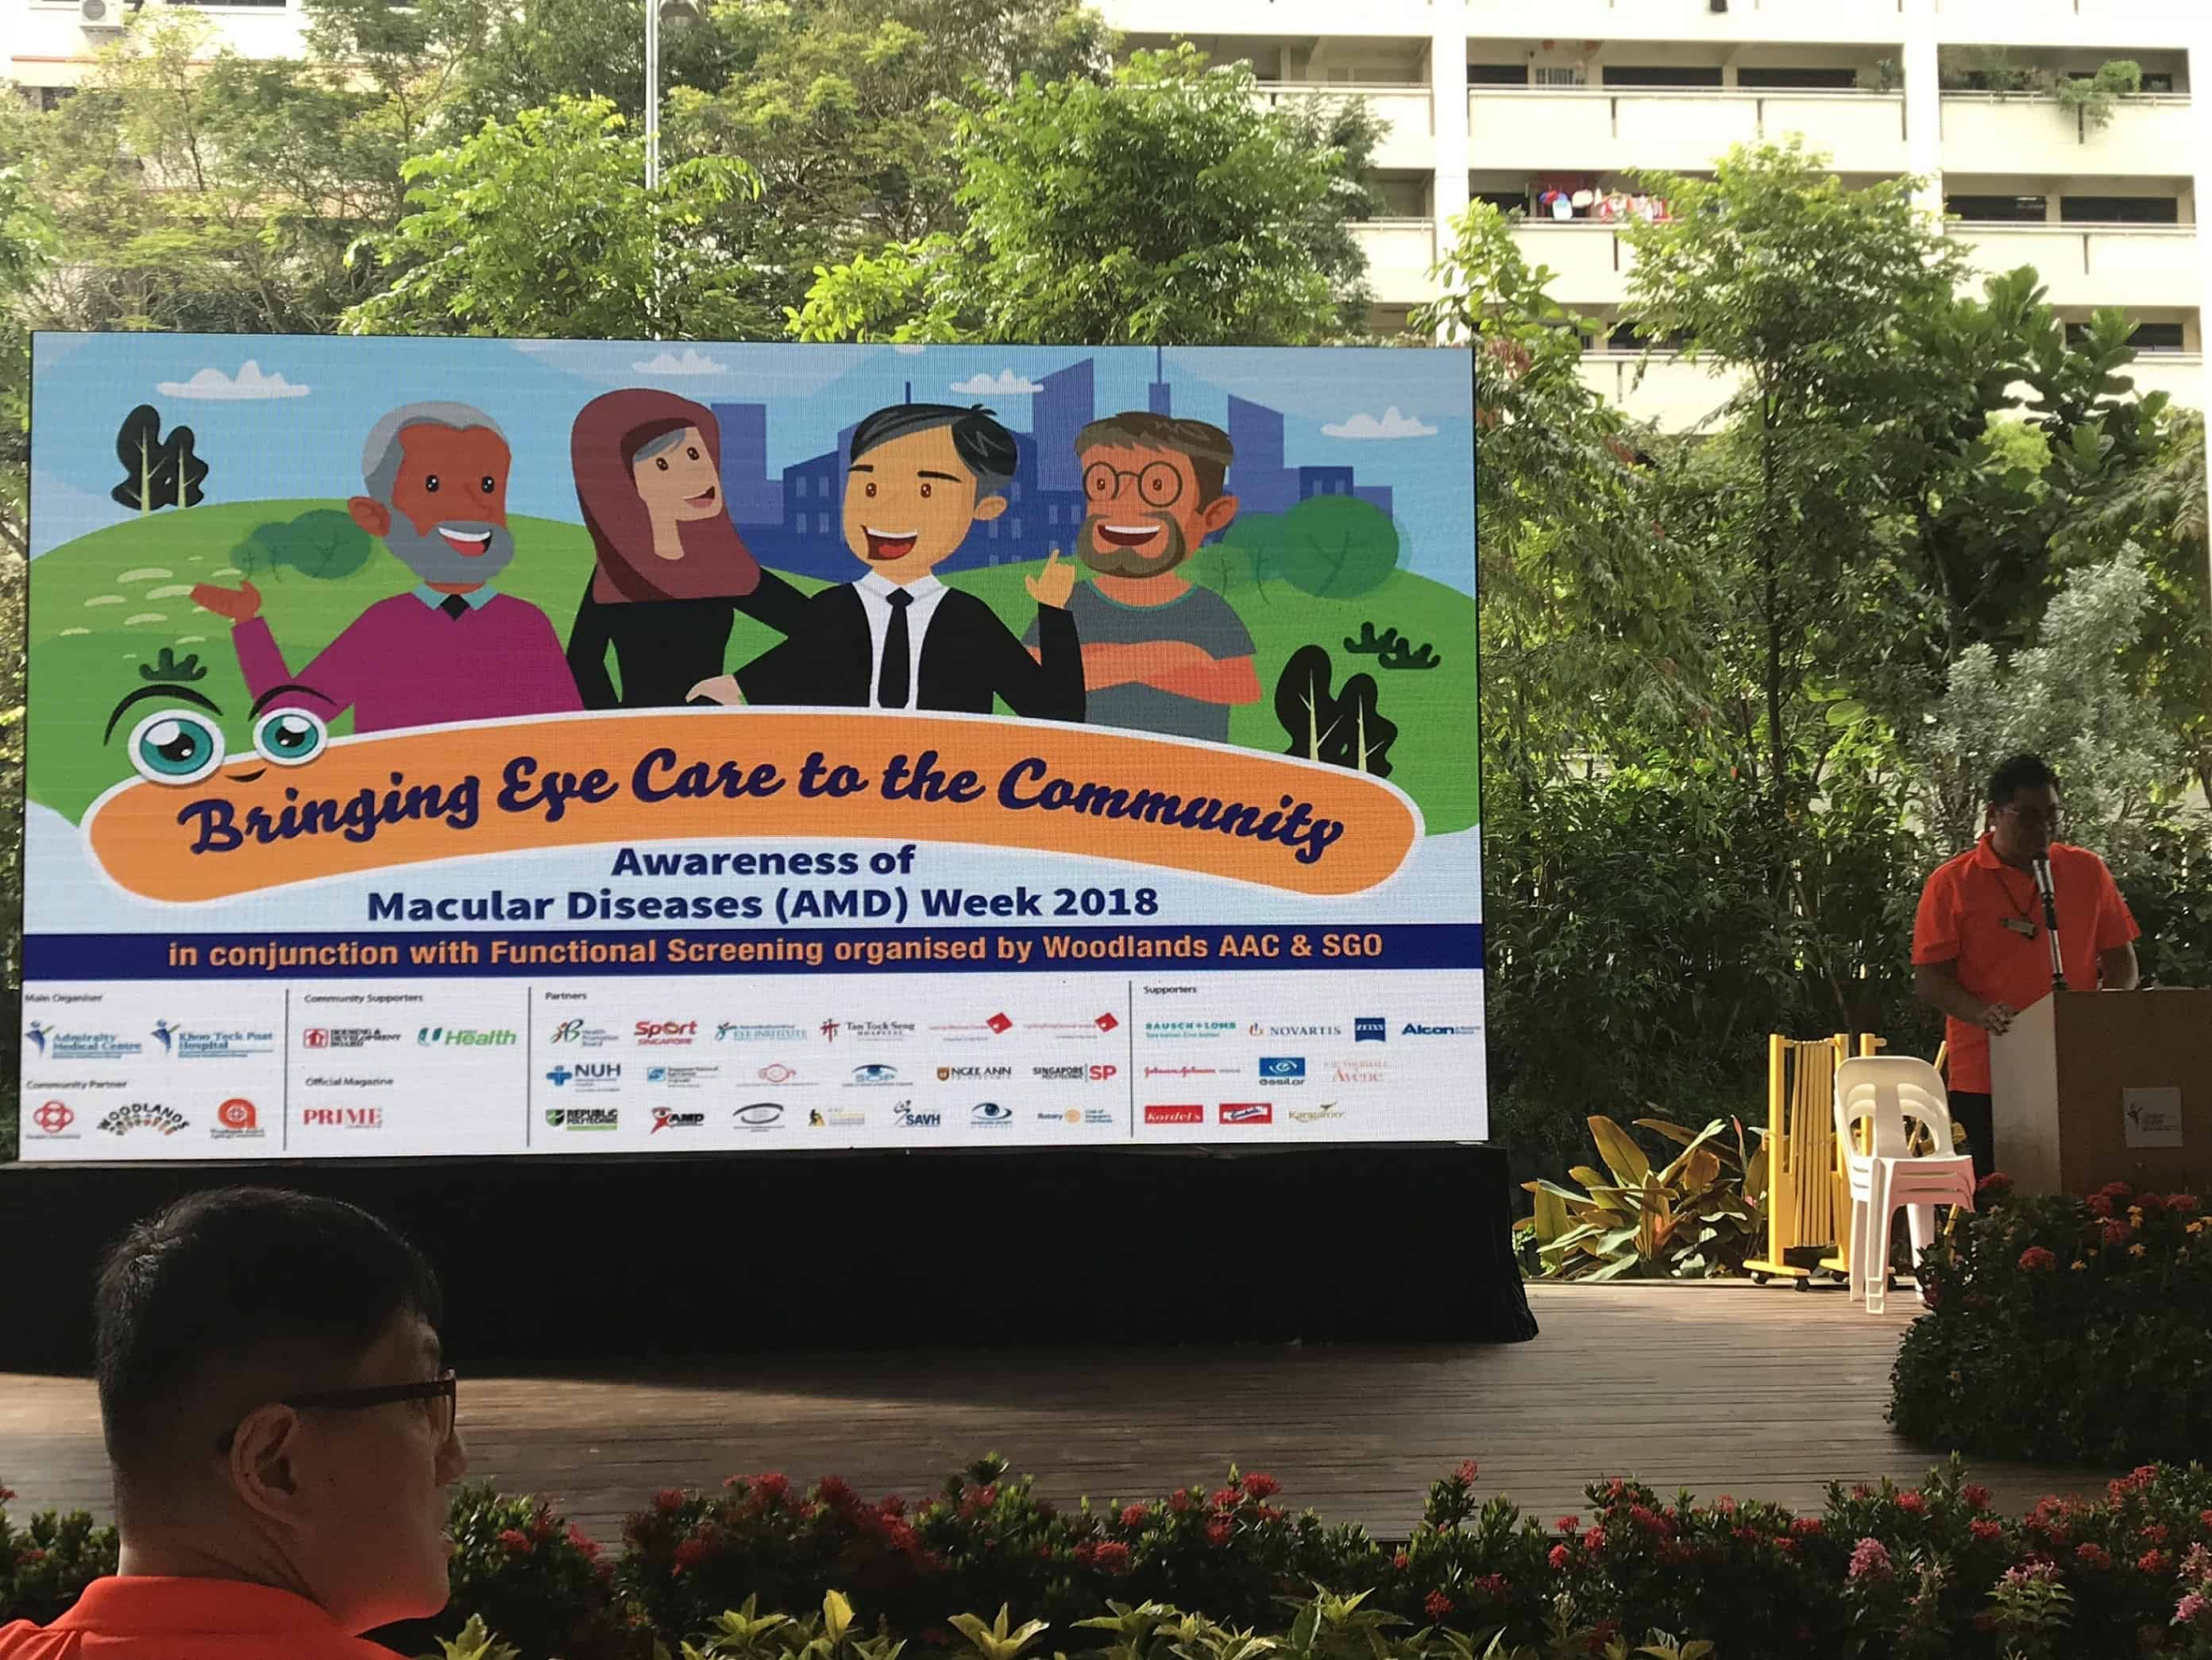 The Eye and Vision Heath Awards 2018 were presented at the Awareness of Macular Diseases (AMD) Week 2018 held in Kampong Admiralty on 13 October 2018